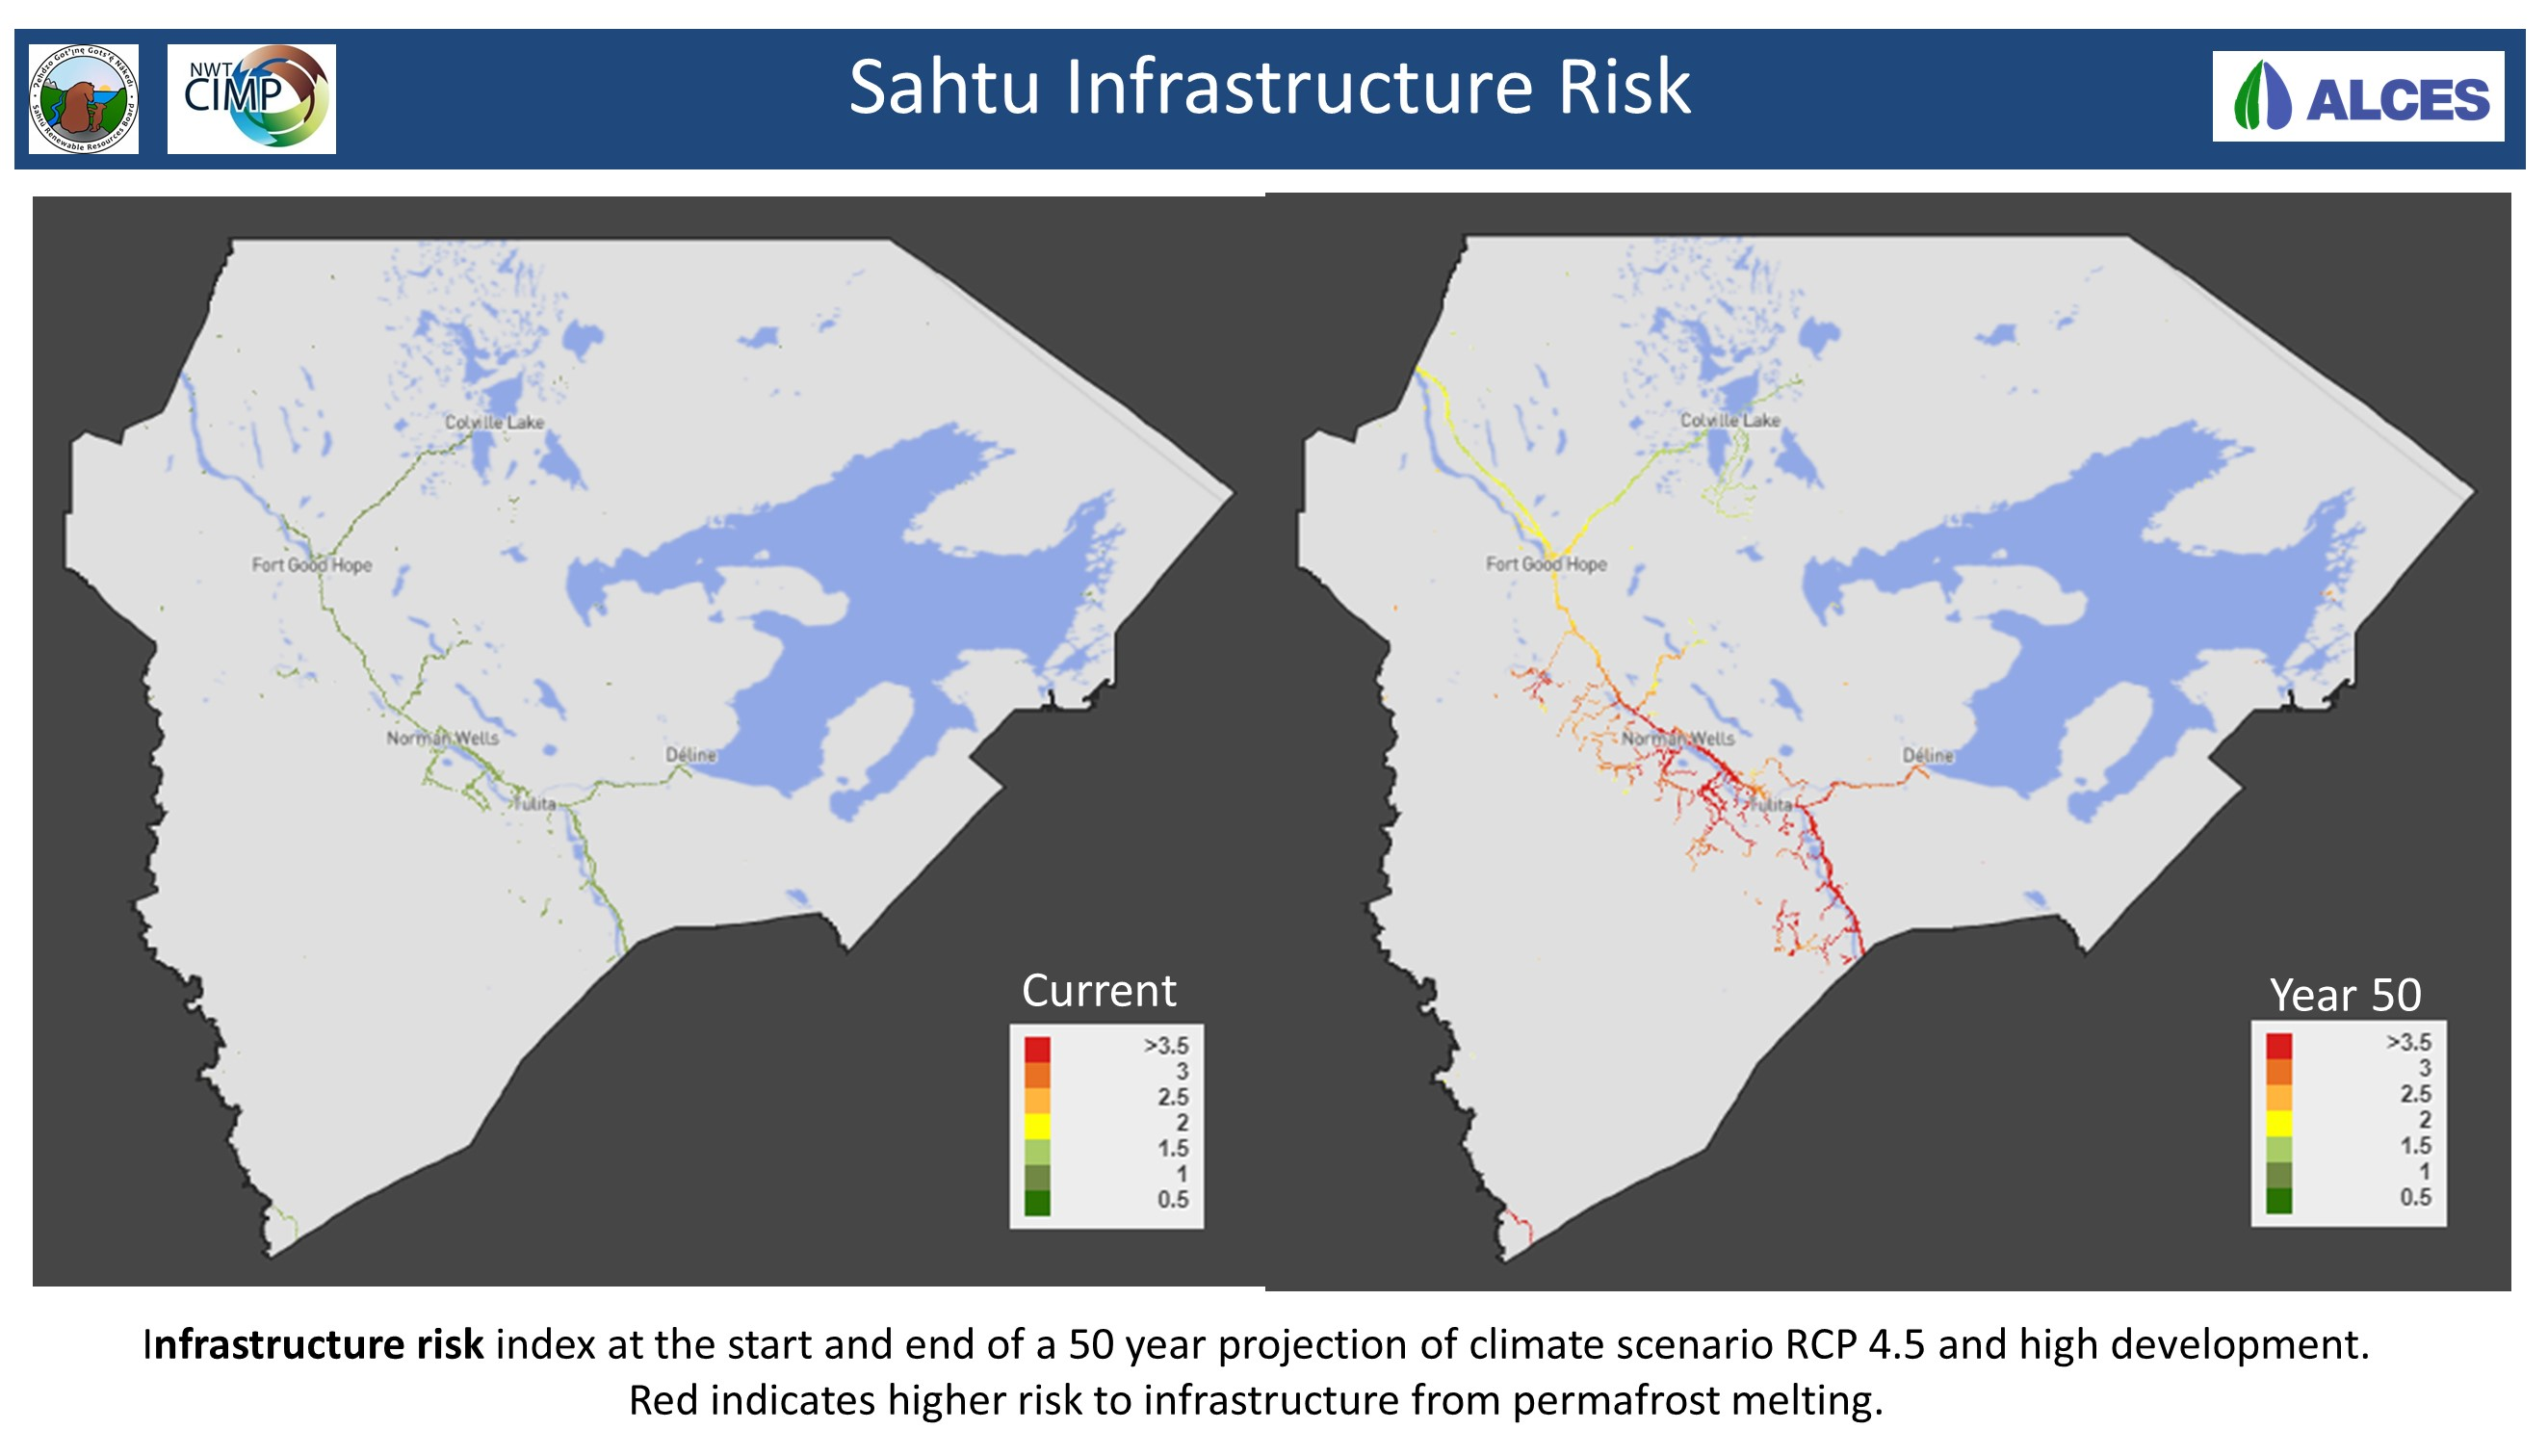 Sahtu Infrastructure Risk